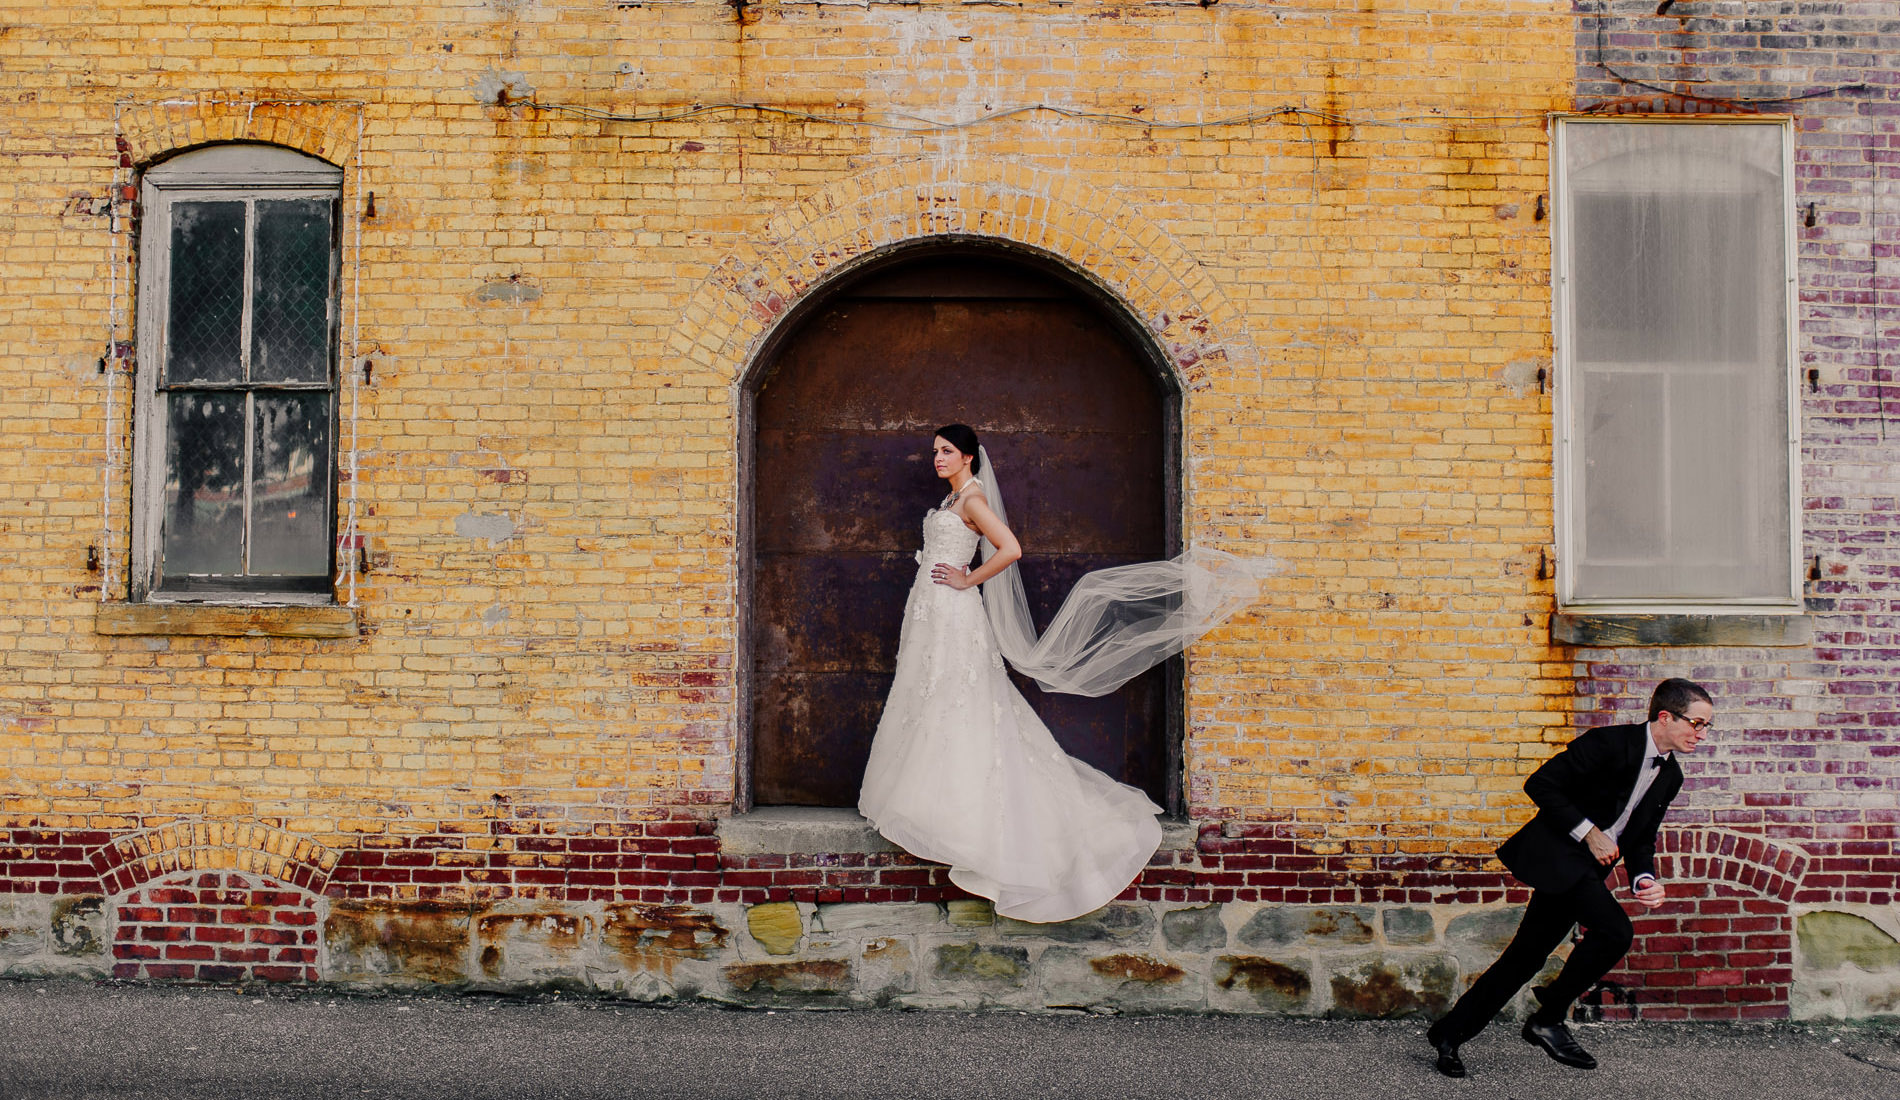 creative bride and groom portrait with groom running